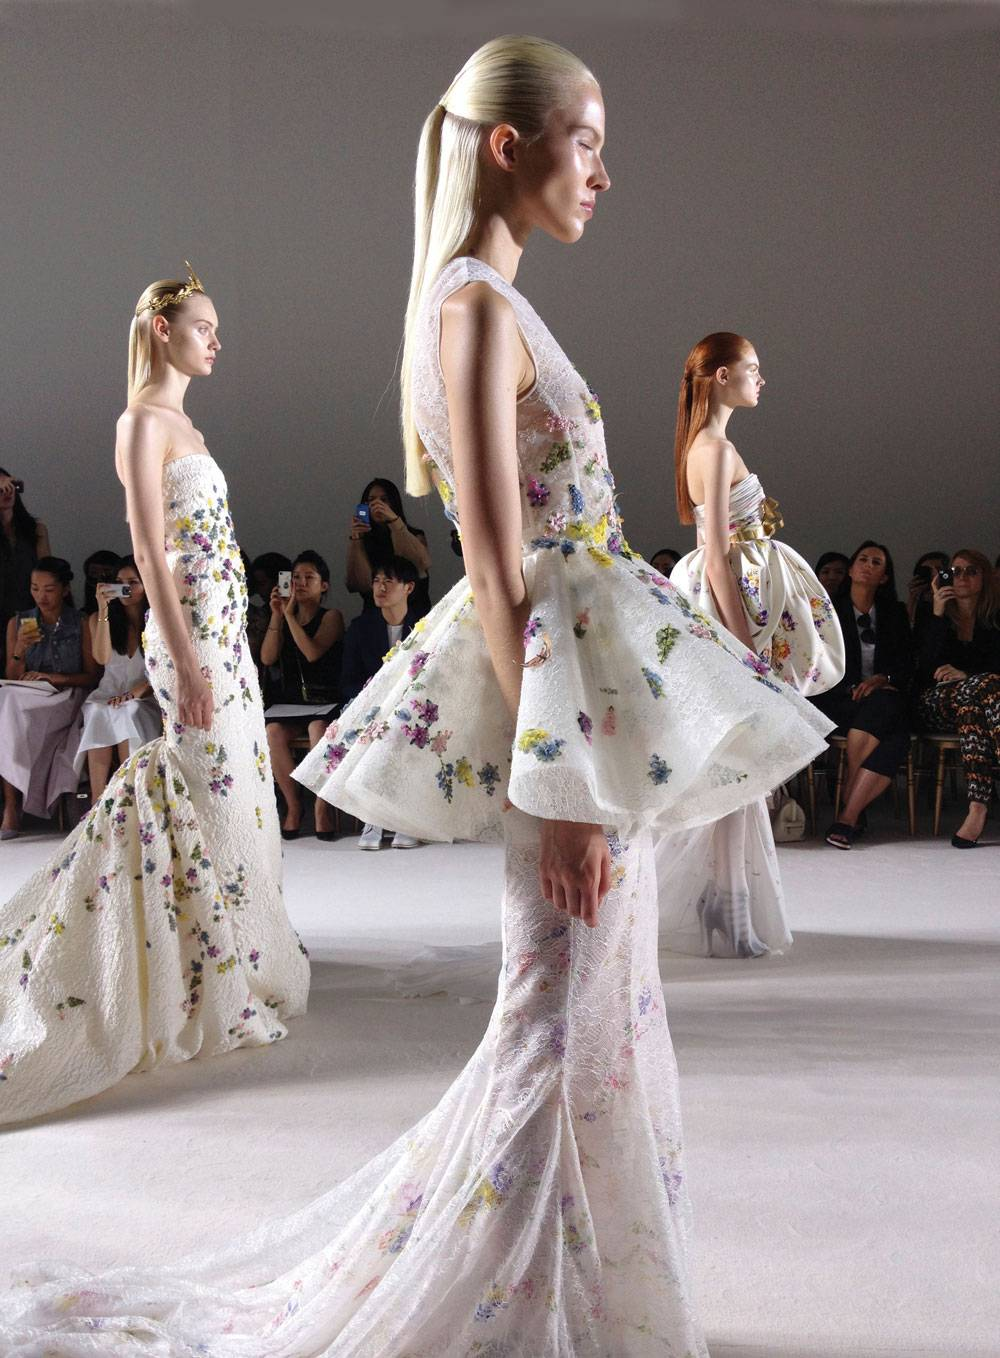 photo courtesy of christine chiu, giambattista valli haute couture f/w 13